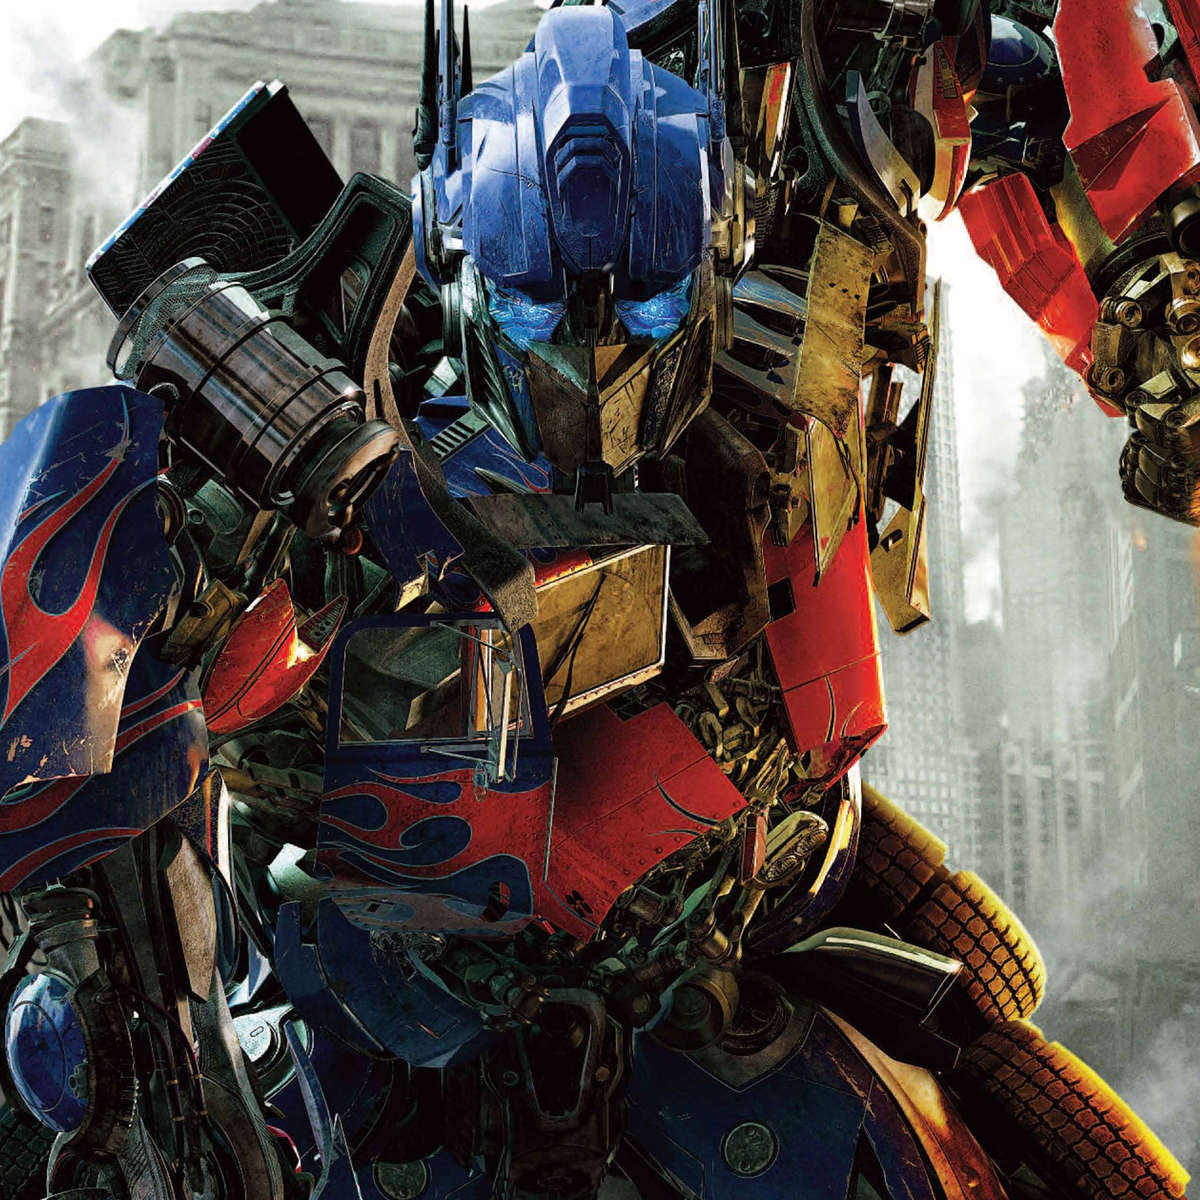 optimus_prime_transformers_dark_of_the_moon-wide.jpg